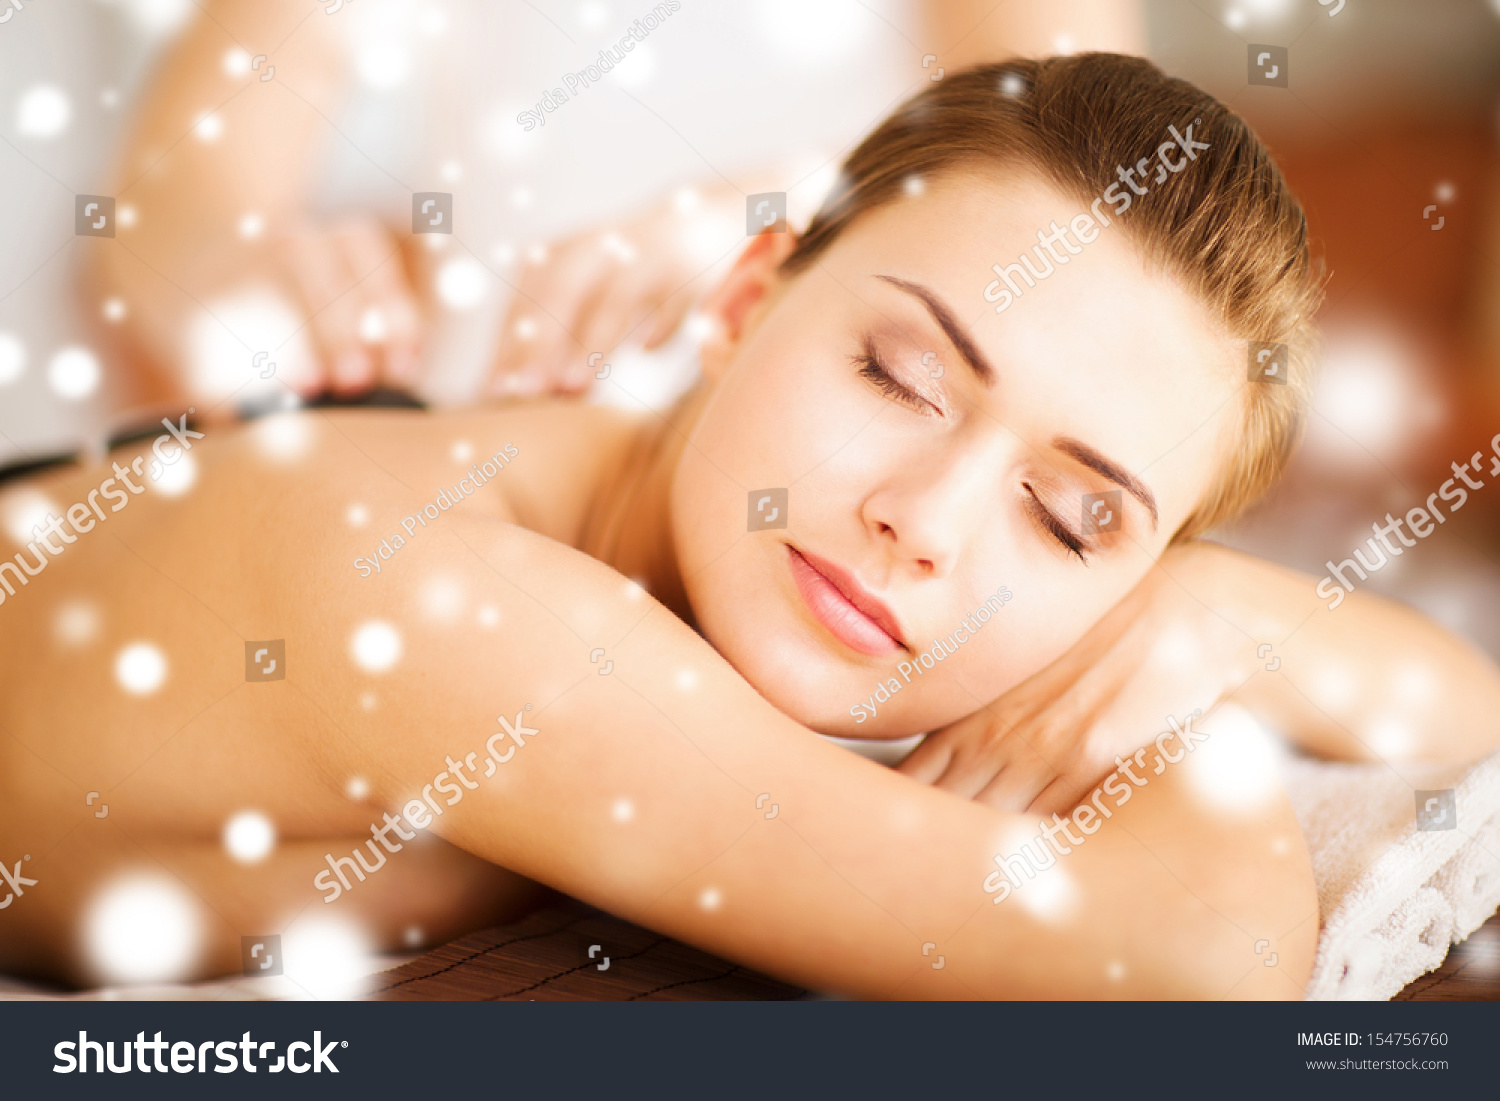 health and beauty concept woman in spa salon with hot stones stock photo 154756760 shutterstock. Black Bedroom Furniture Sets. Home Design Ideas